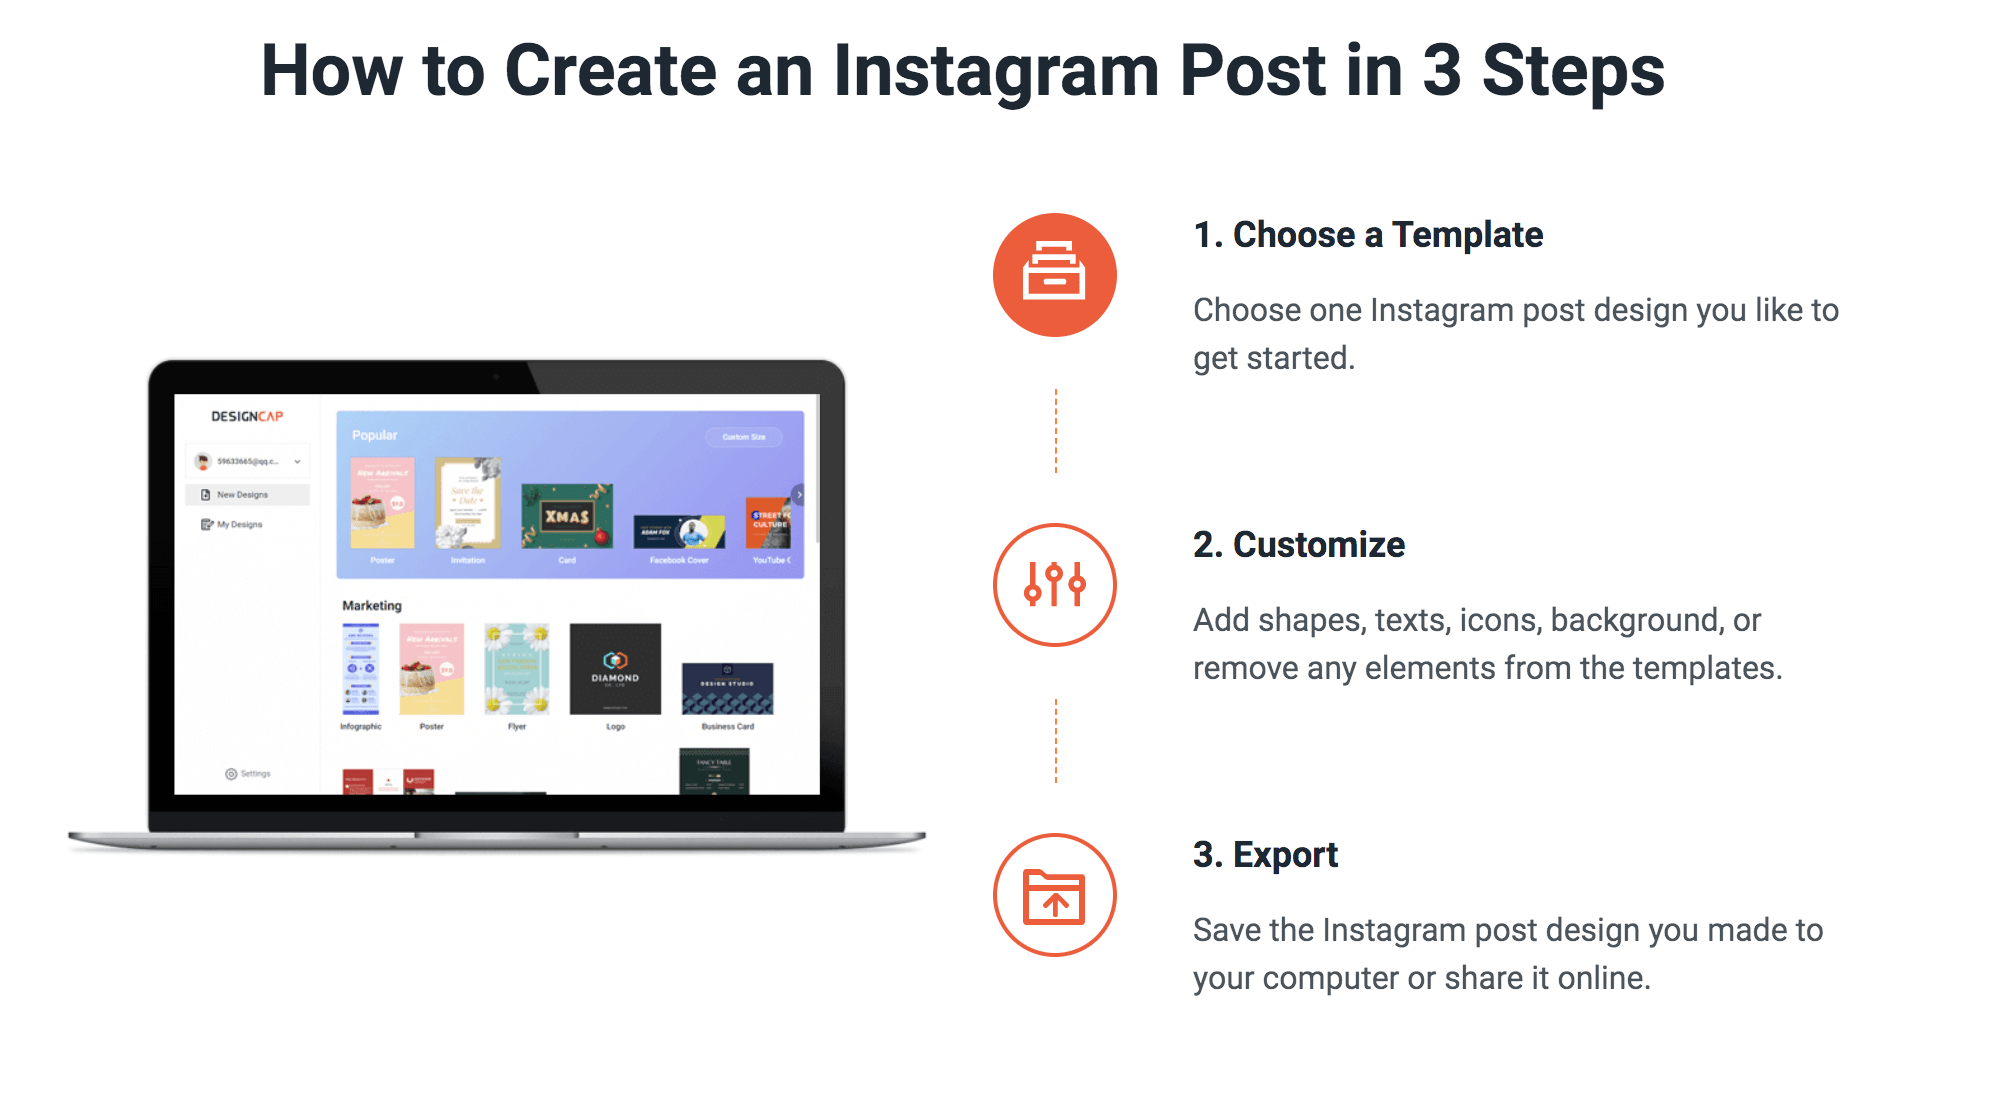 DesignCap - How to Create an Instagram Image